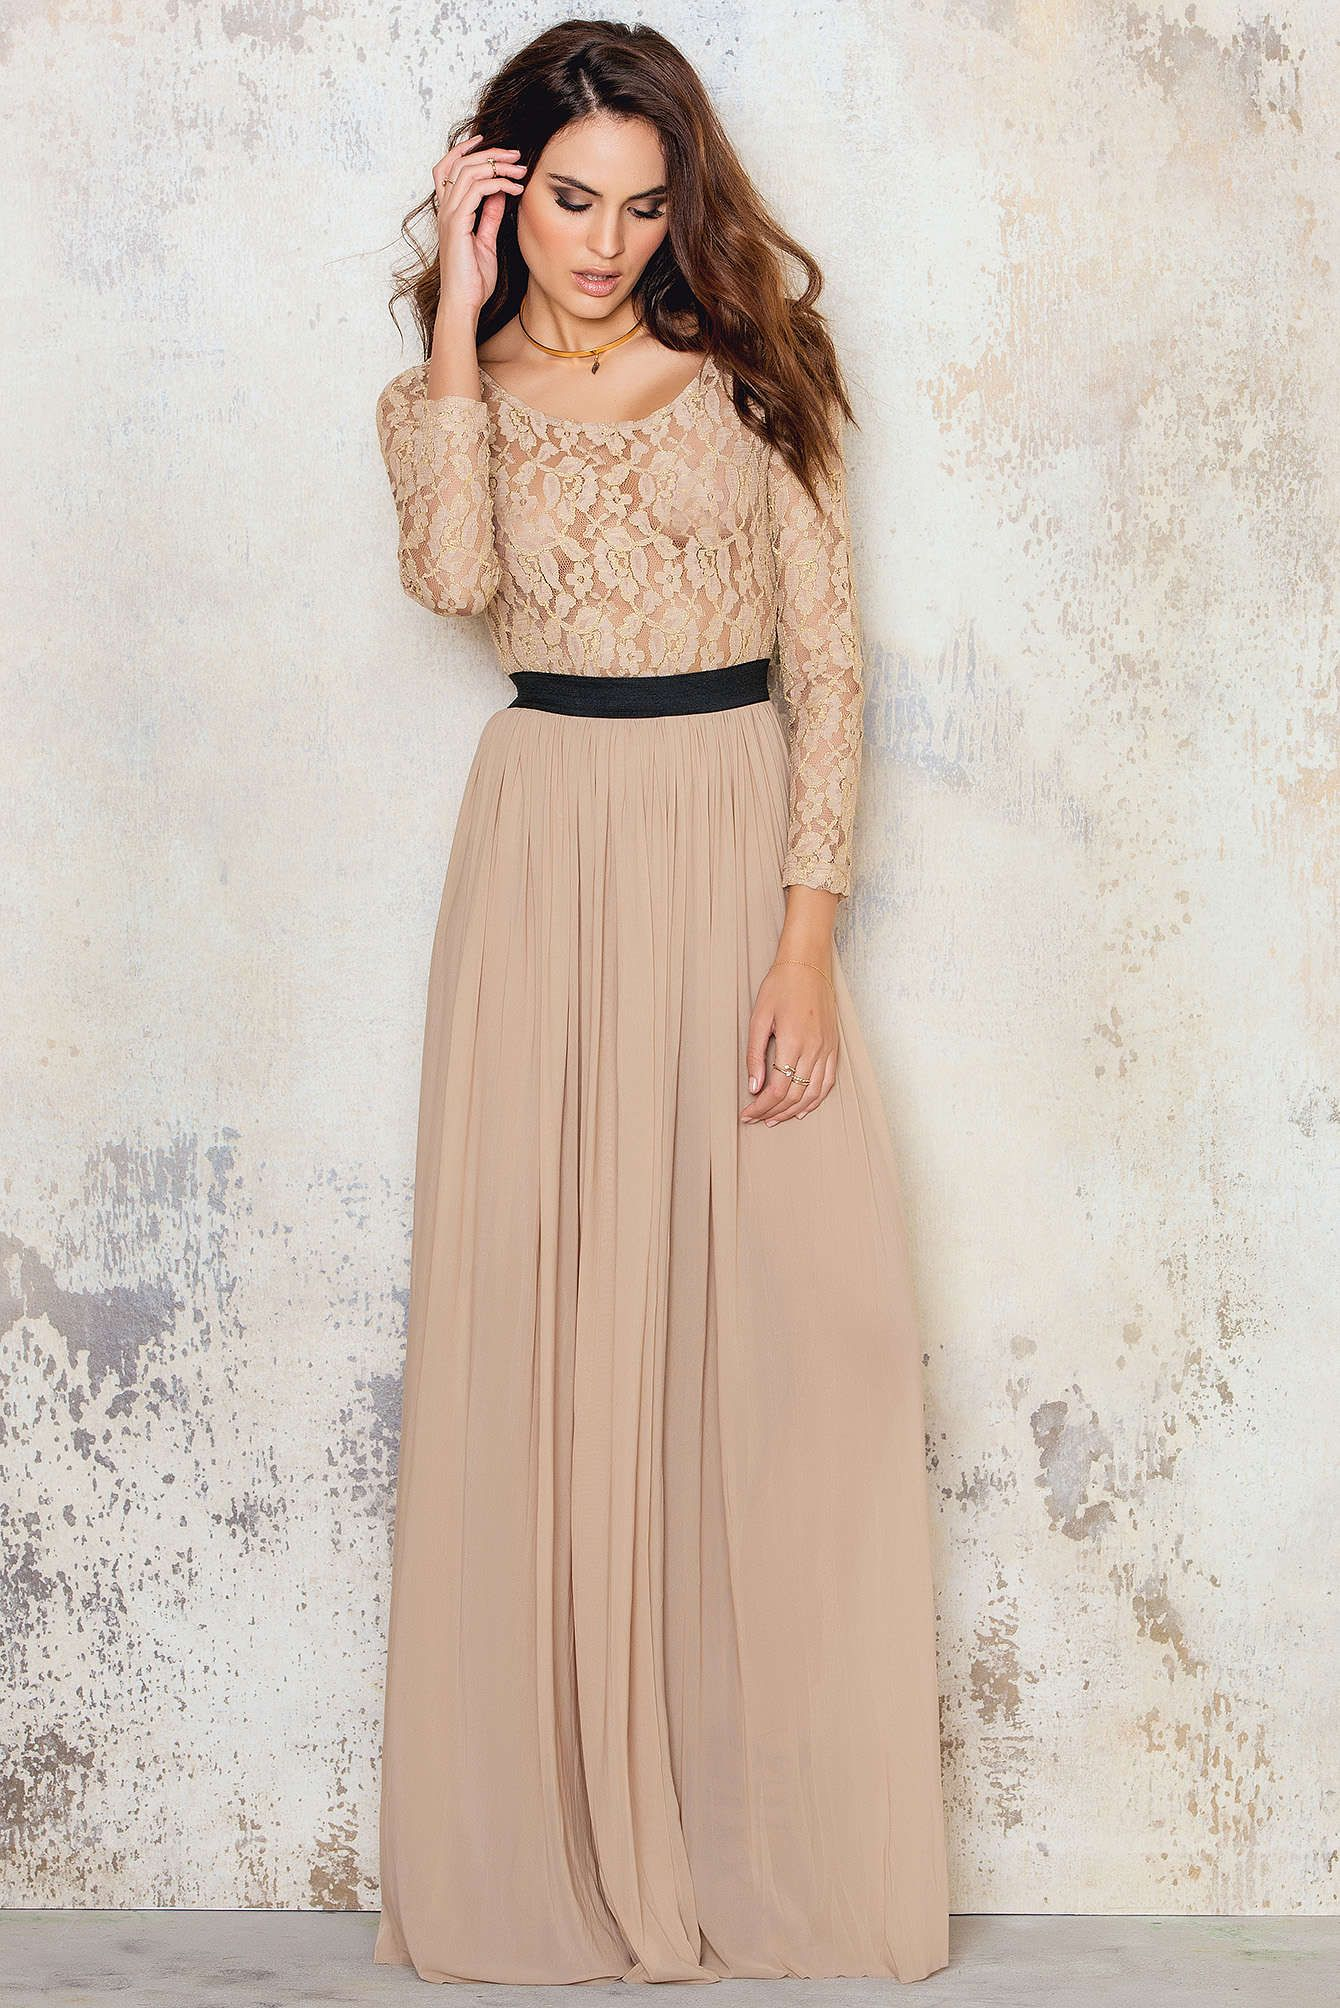 Feel like a princess in the long sleeve lace maxi dress by rare